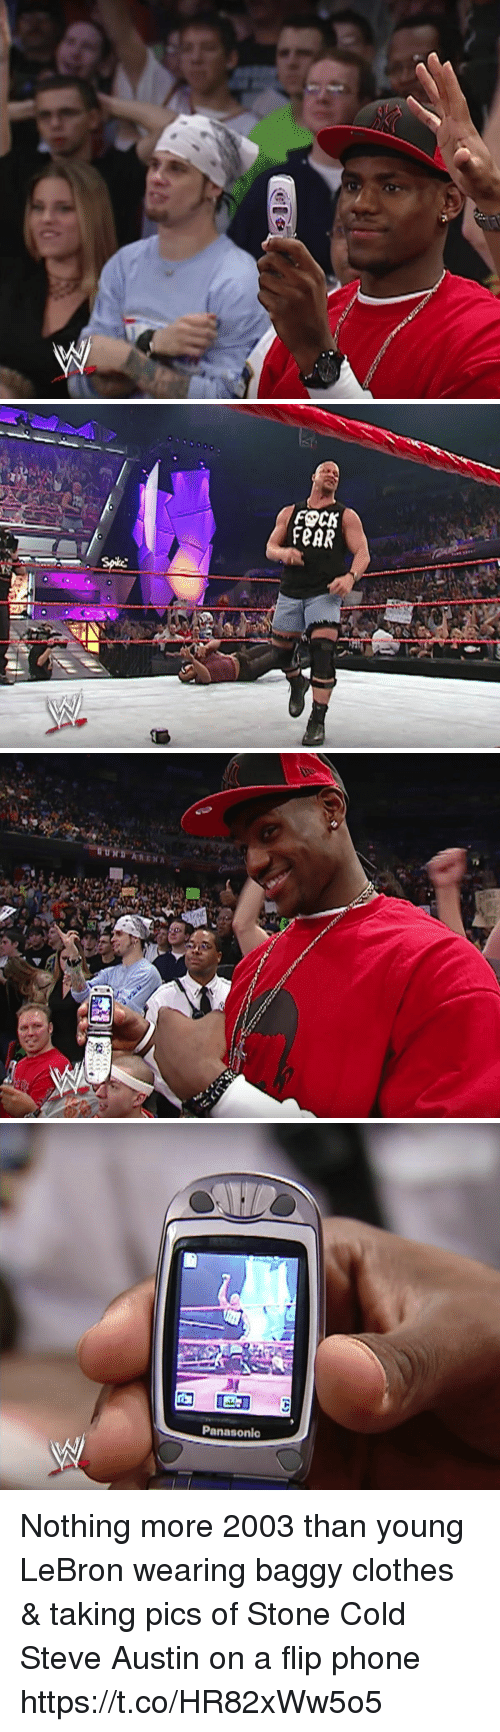 Clothes, Funny, and Phone: FOCK  FeAR   UND   Panasonic Nothing more 2003 than young LeBron wearing baggy clothes & taking pics of Stone Cold Steve Austin on a flip phone https://t.co/HR82xWw5o5